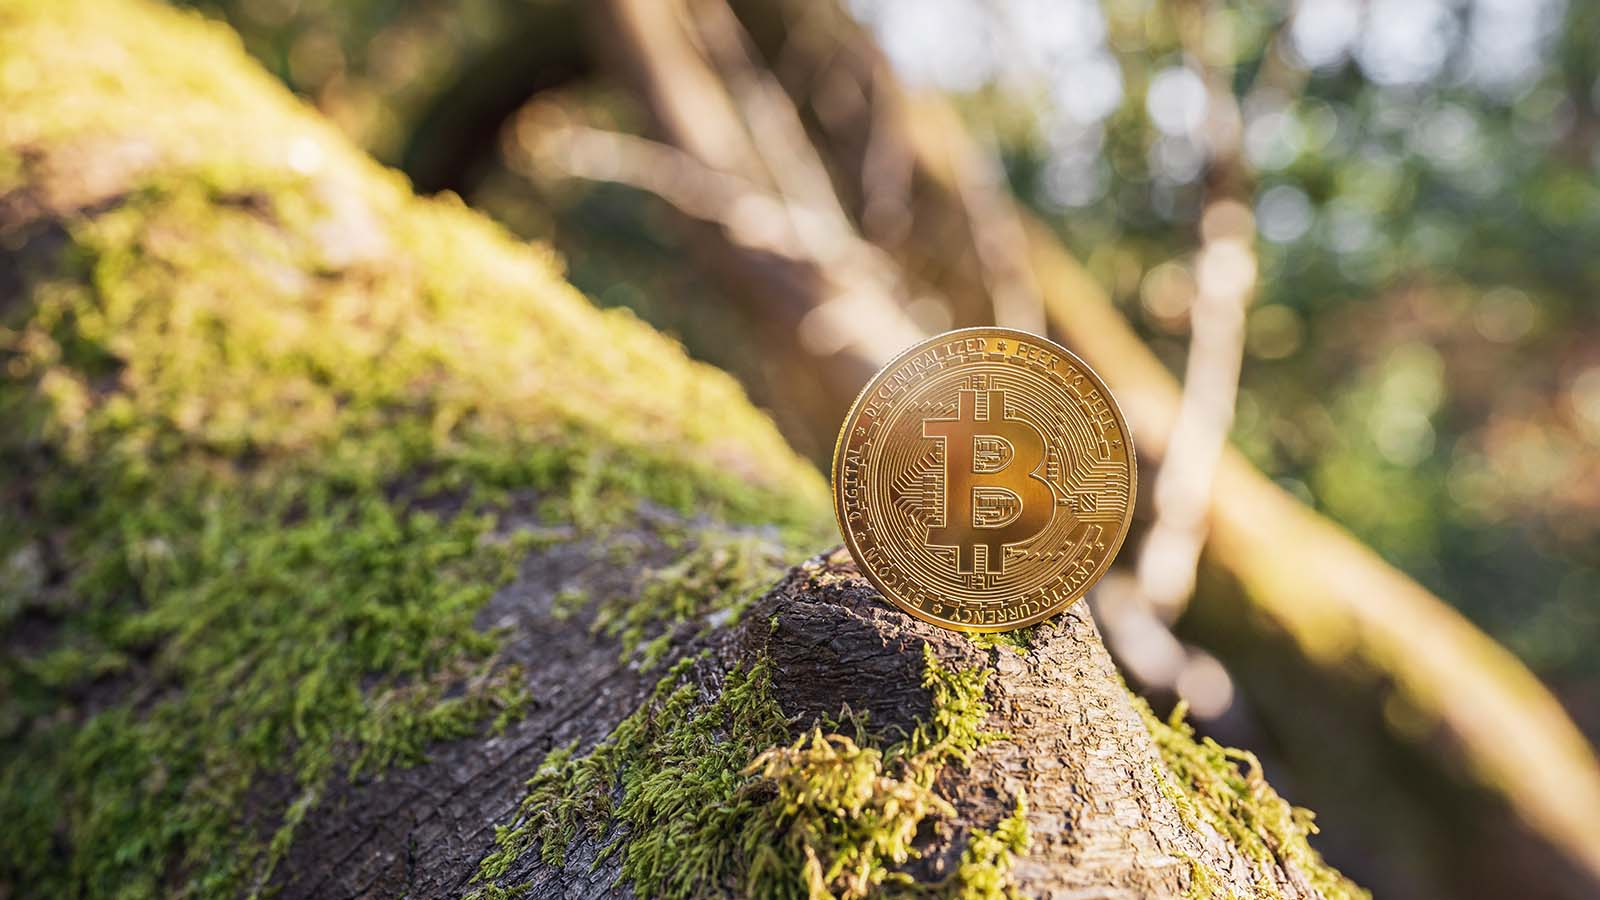 Bitcoin - Why Bitcoin Could Soar to $100,000